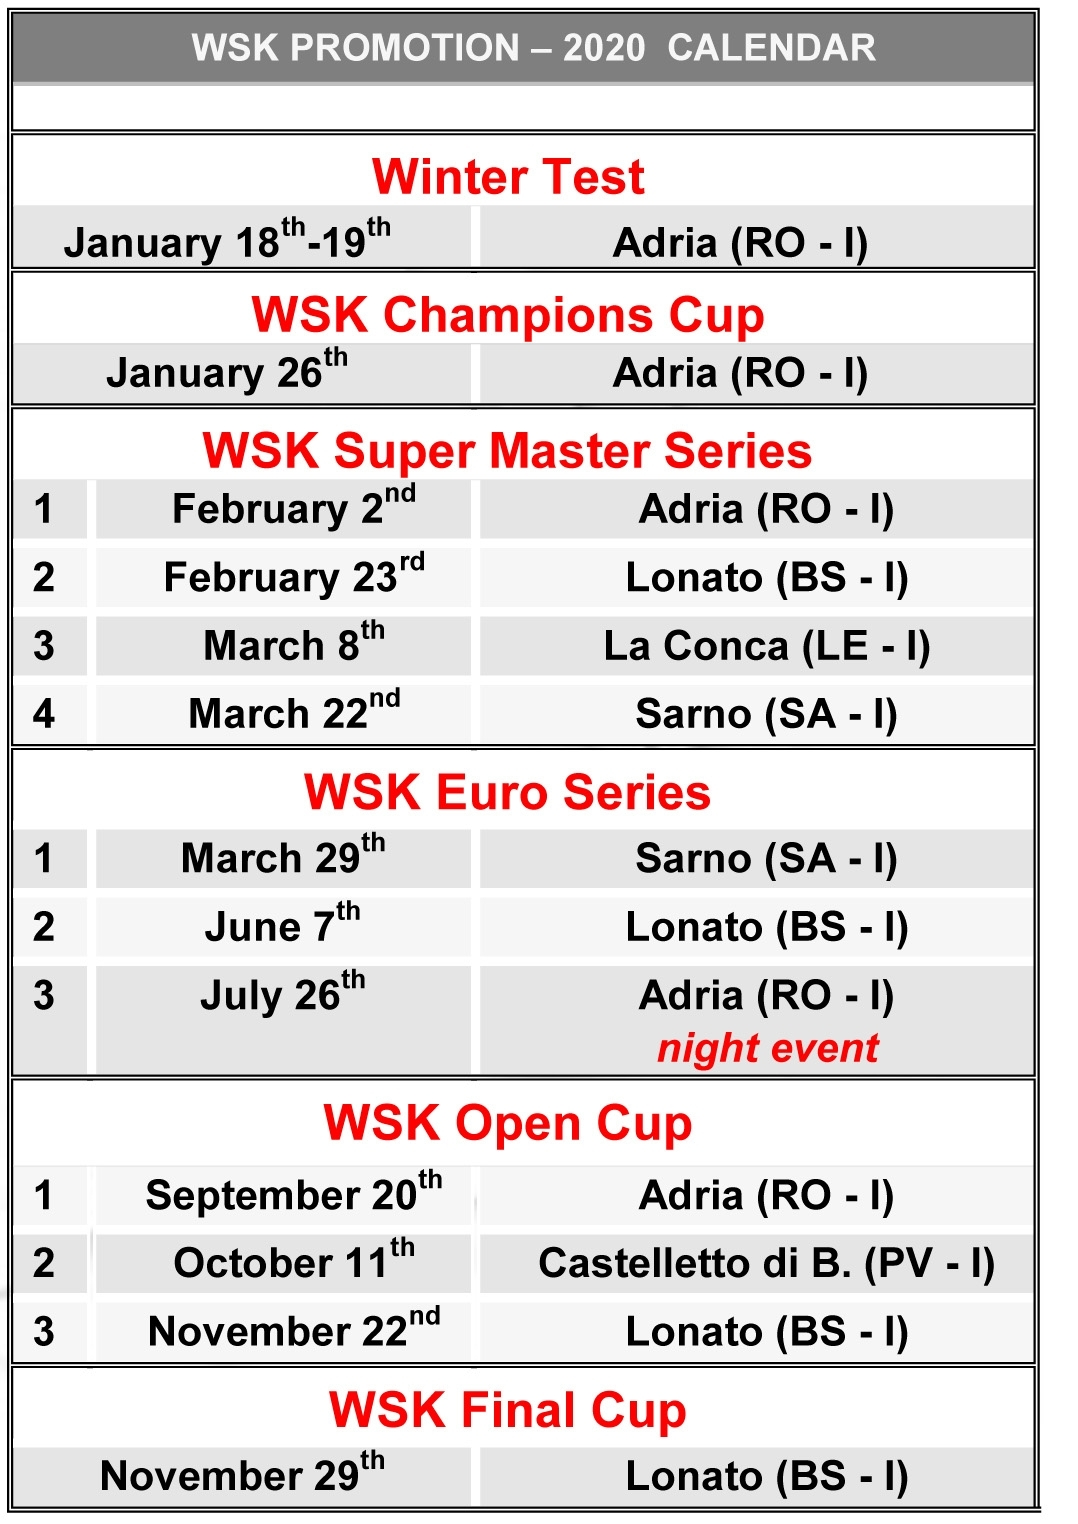 Wsk Promotion Announces Its Calendar For 2020 Season